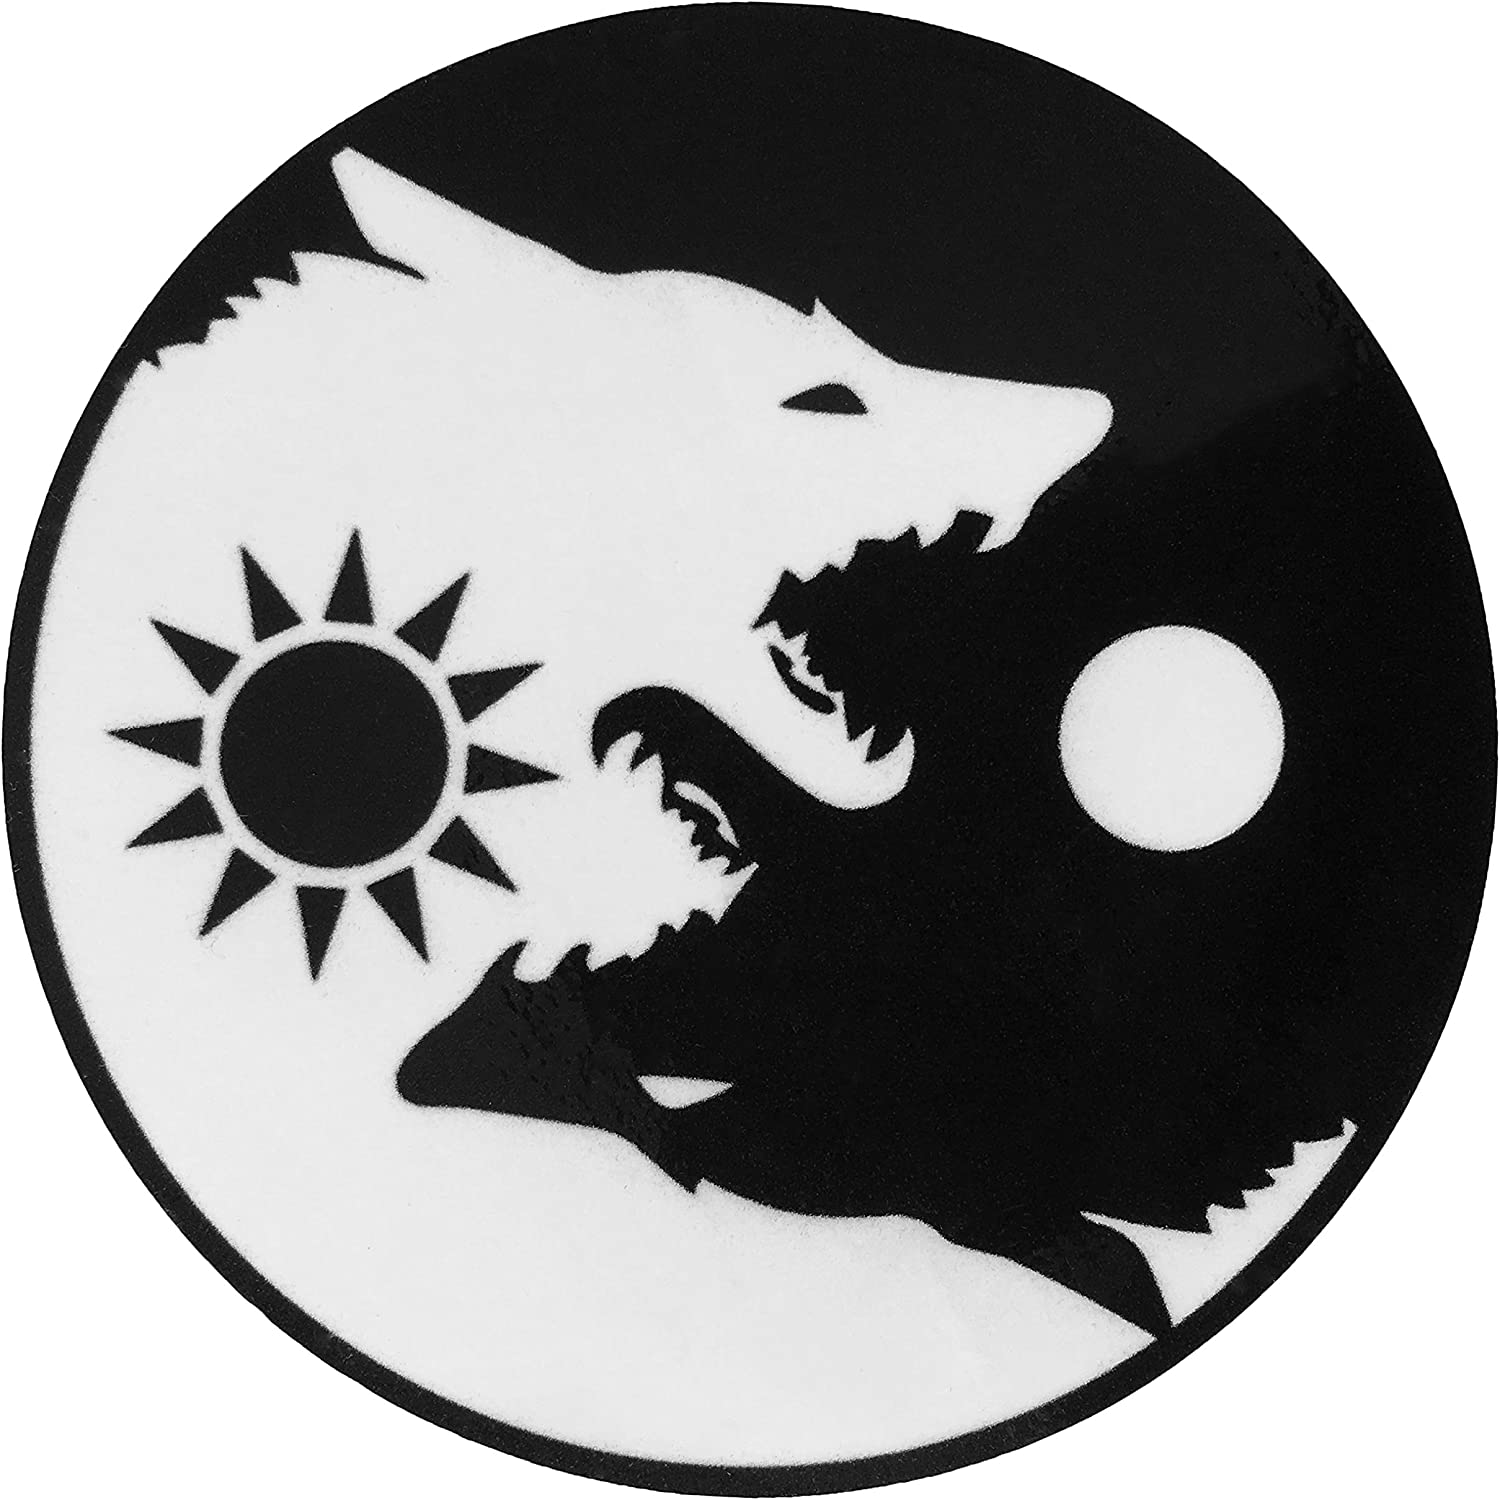 Papapatch Wolf Yin Yang Sun Moon Day and Night Kung Fu Chinese Tao Balance Sign Fox Vinyl Window Laptop Wall Decor Decal Sticker (STK-Wolf-YIN-YANG)